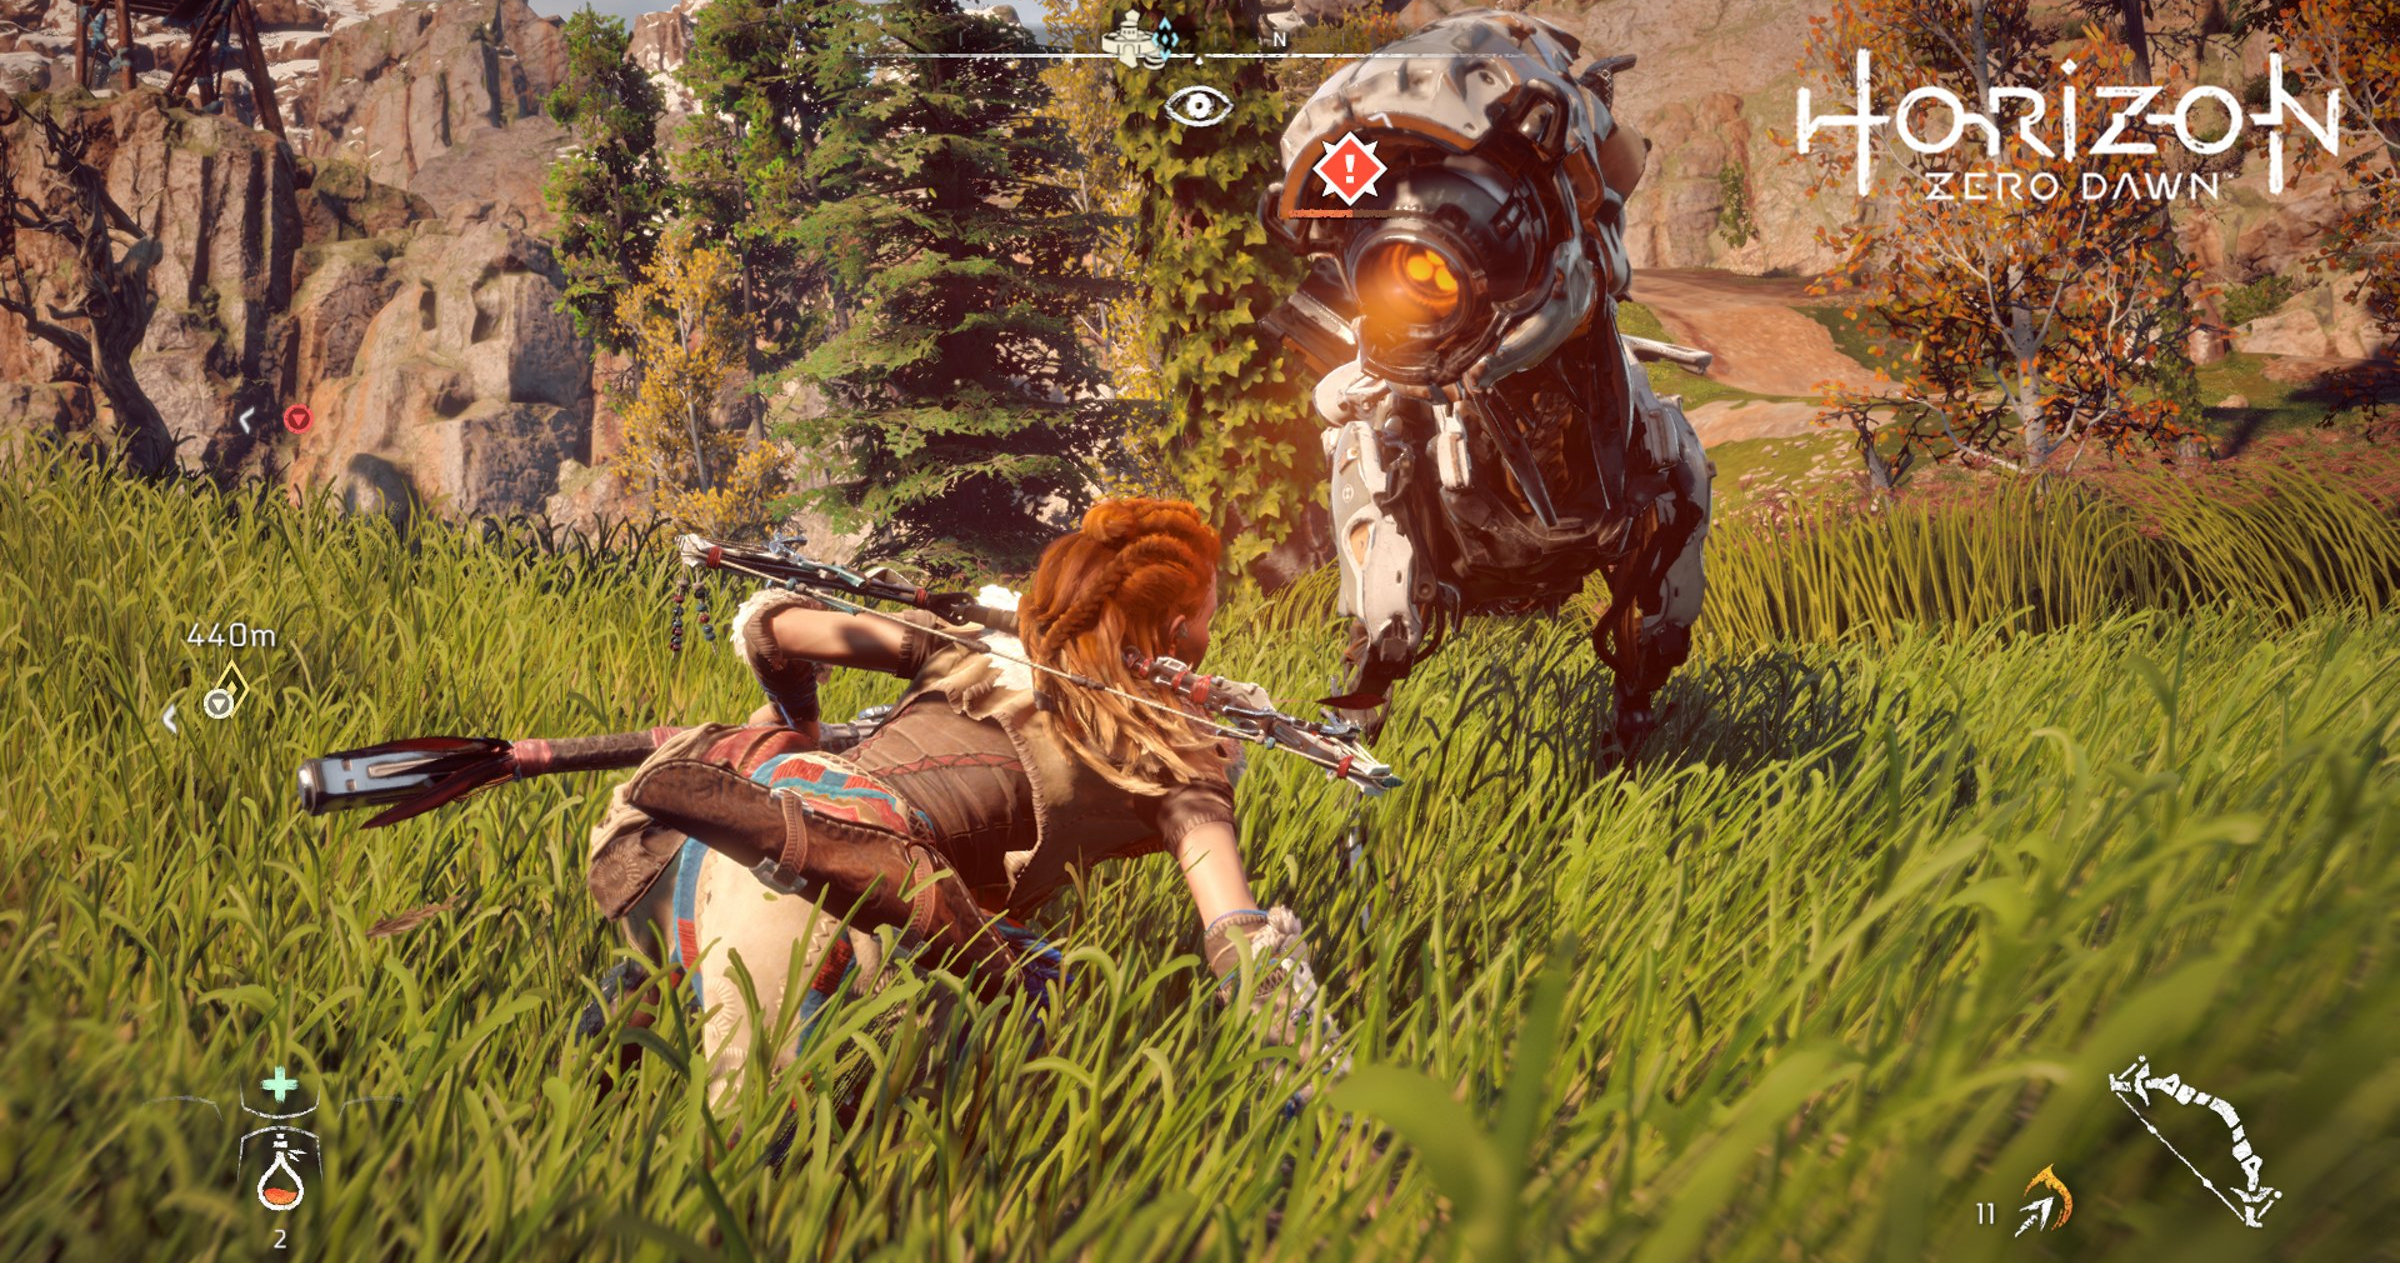 How to score Horizon Zero Dawn for PS4 and PS5 for free